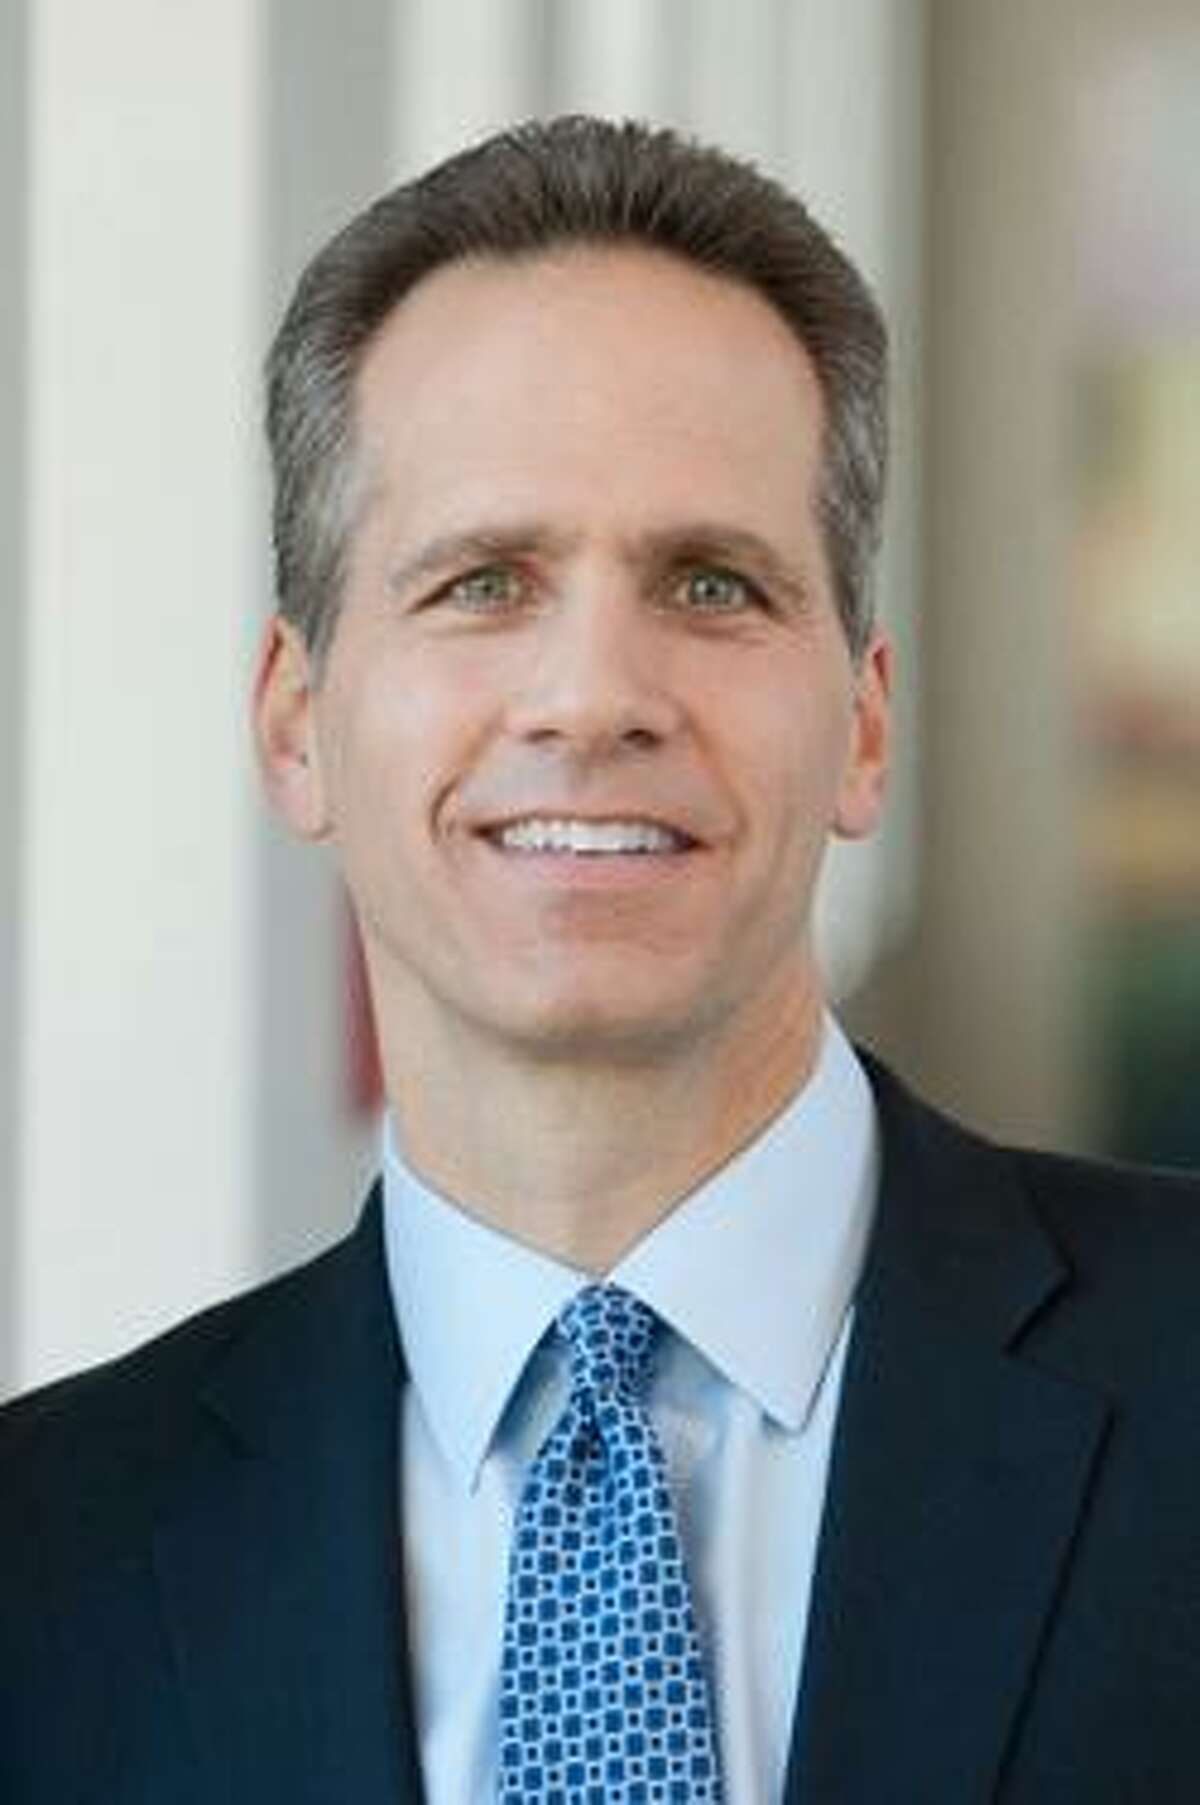 Patrick Charmel, President and CEO of Griffin Hospital, said Monday he and other hospital officiasls throughout the state are relieved that a deal was reached last month with state officials over taxes and federal Medicaid reimbursements..